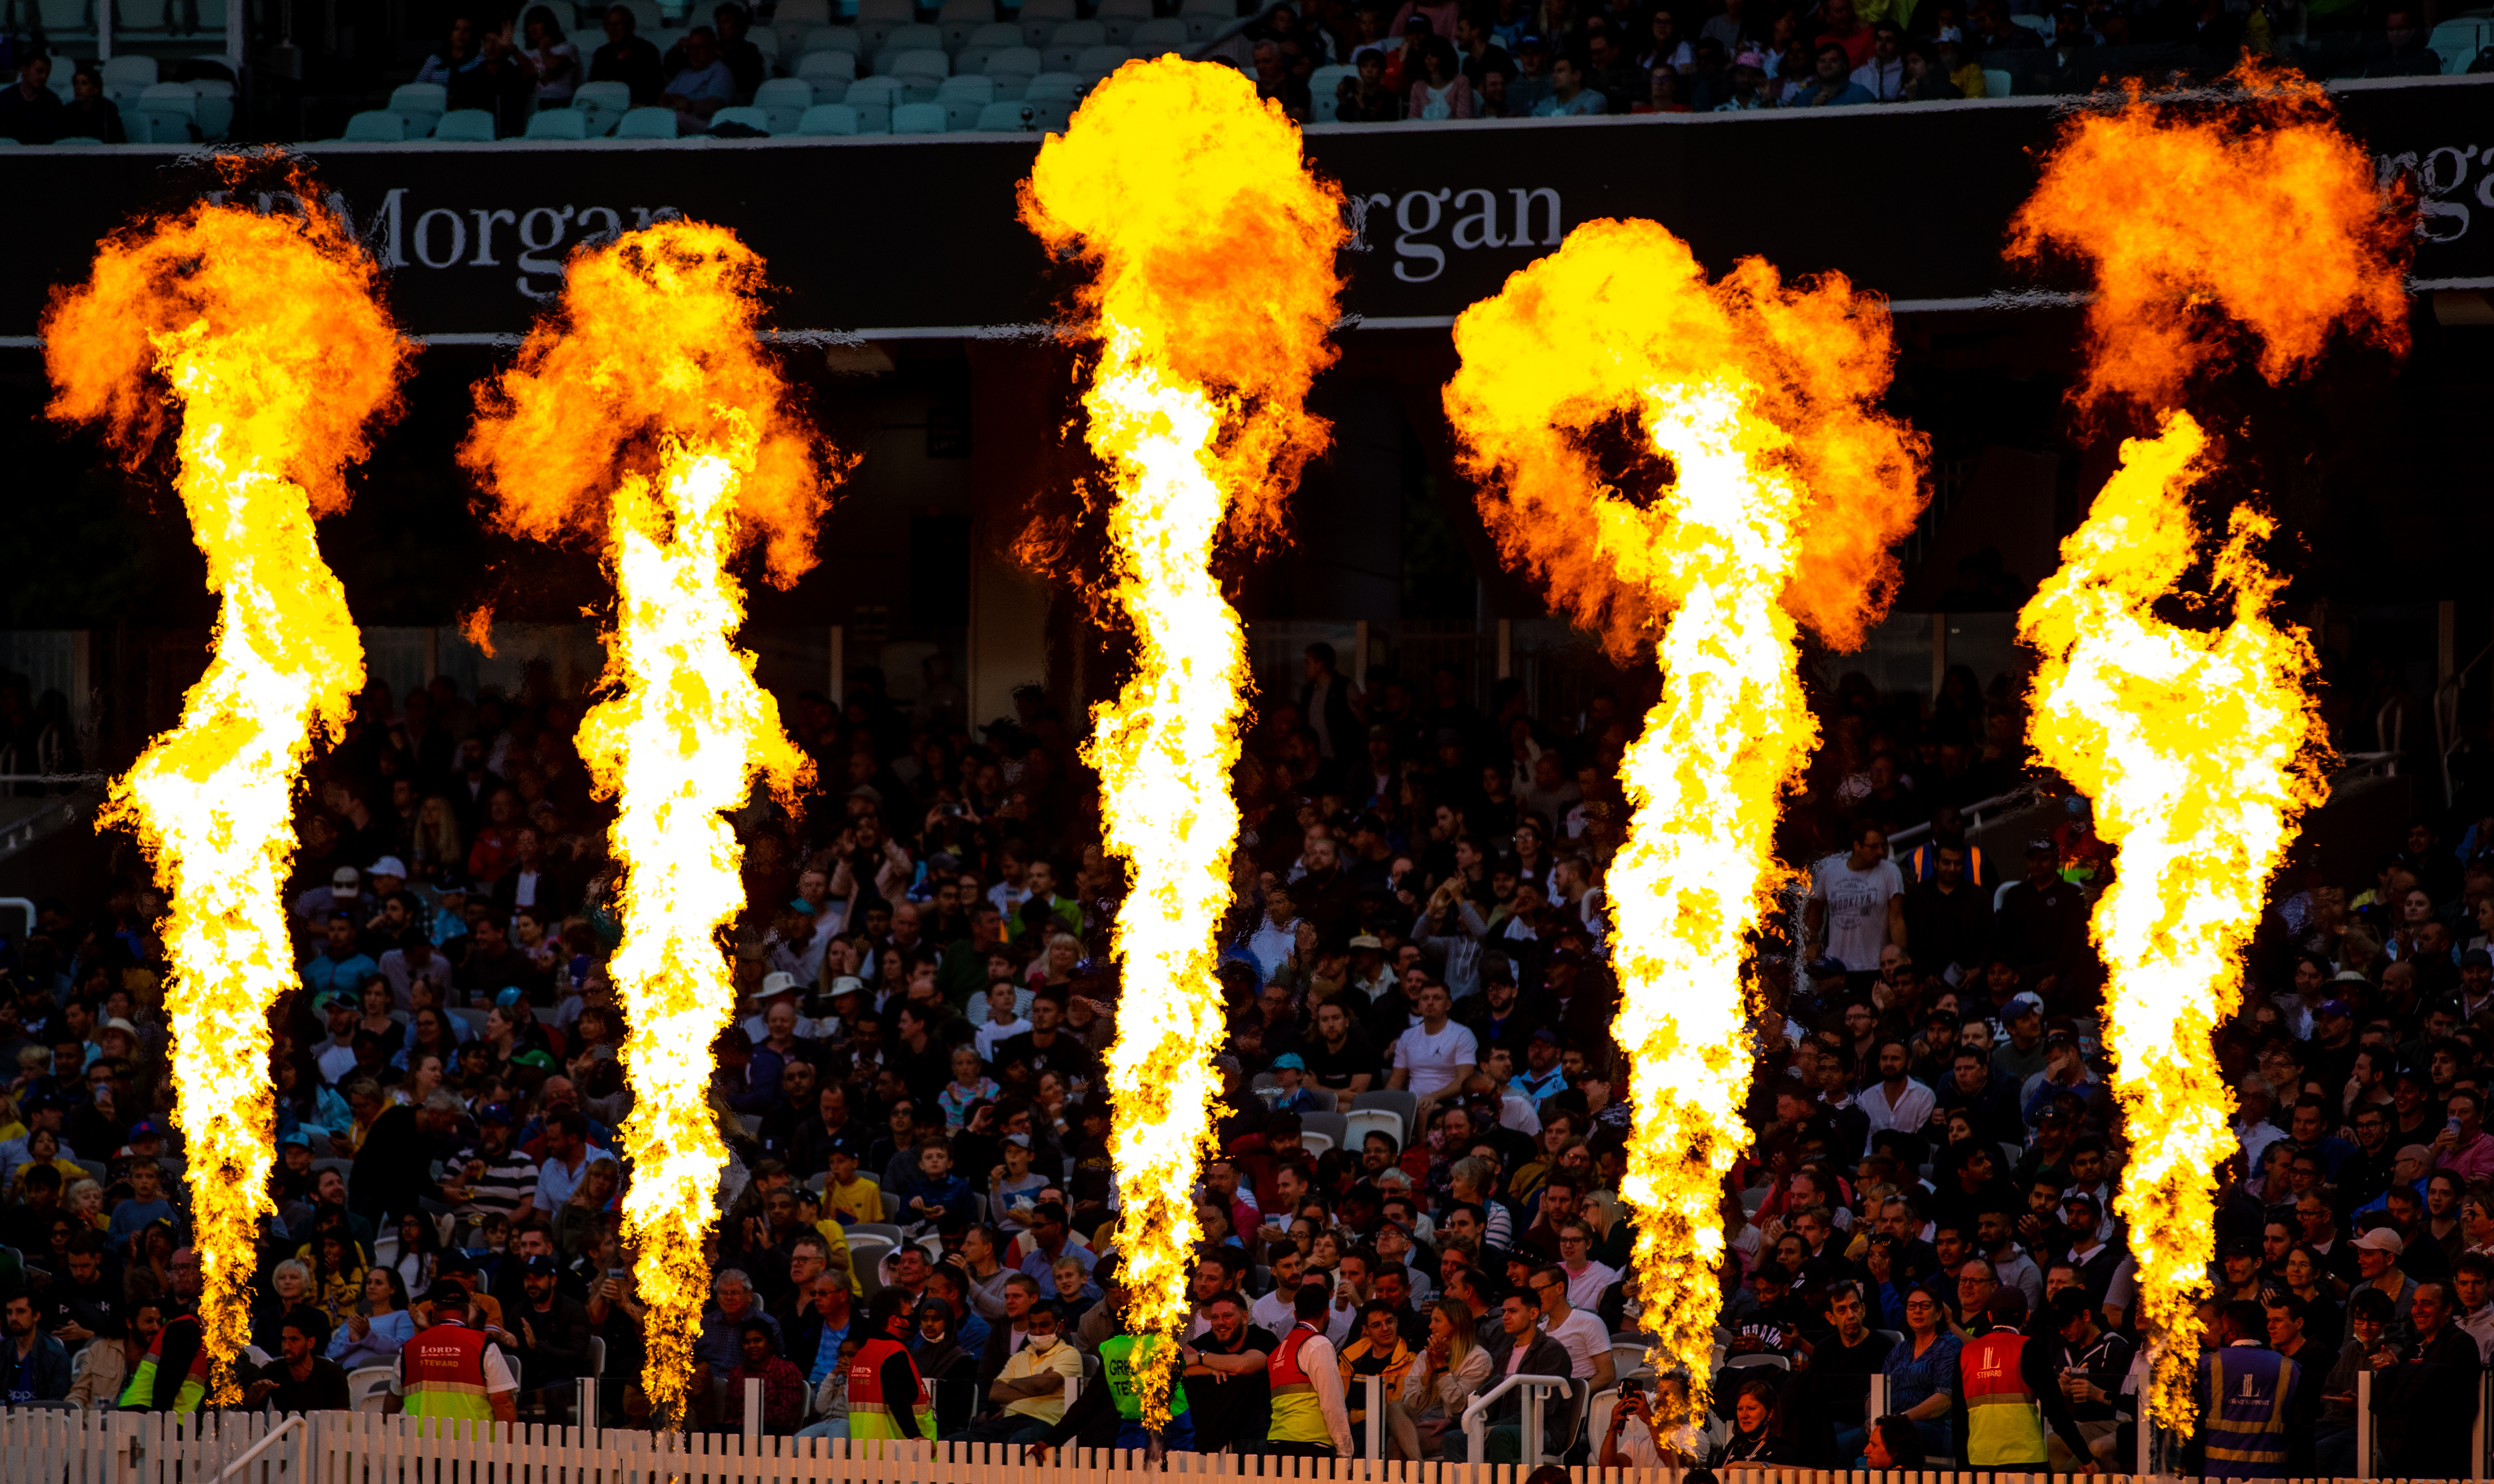 <p>General view pyrotechnics going off during The Hundred match at Lord's, London. Picture date: Sunday August 1, 2021.</p>